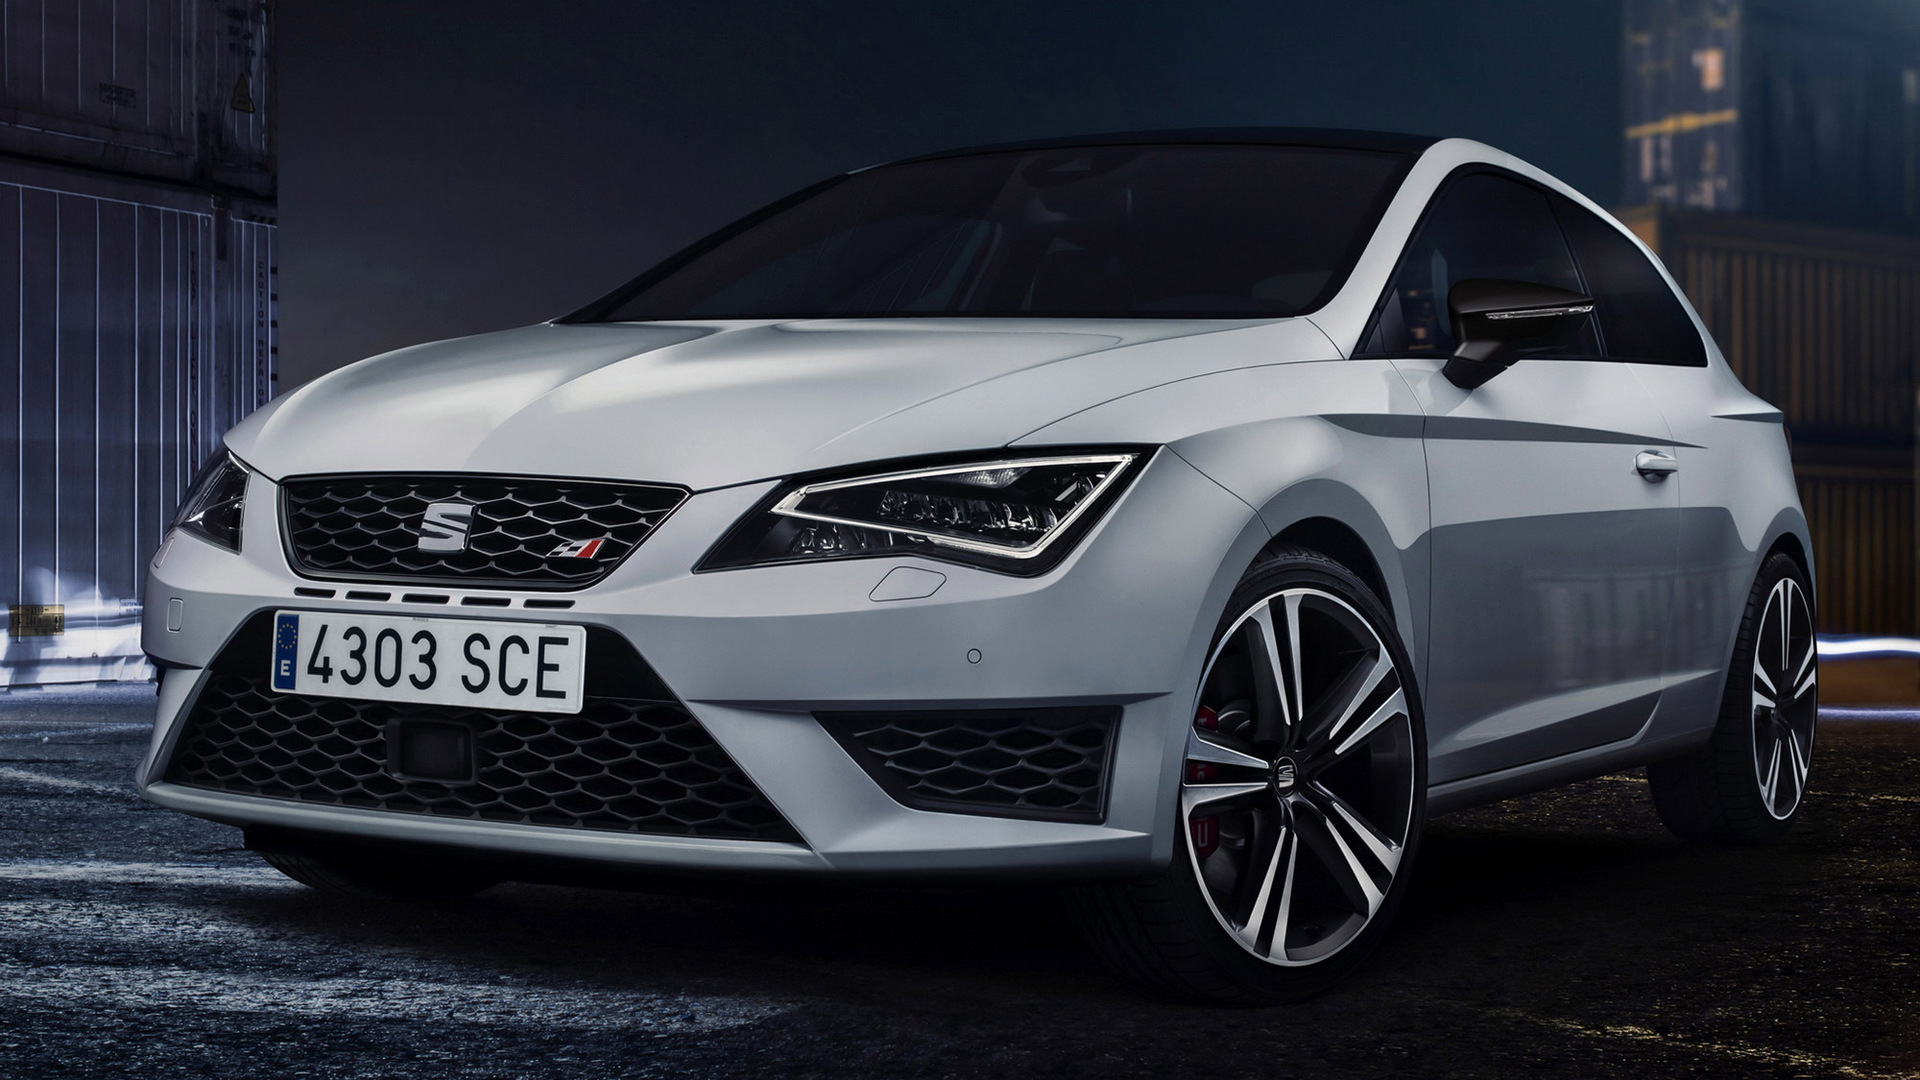 seat leon sc cupra 2014 wallpapers and hd images car pixel. Black Bedroom Furniture Sets. Home Design Ideas